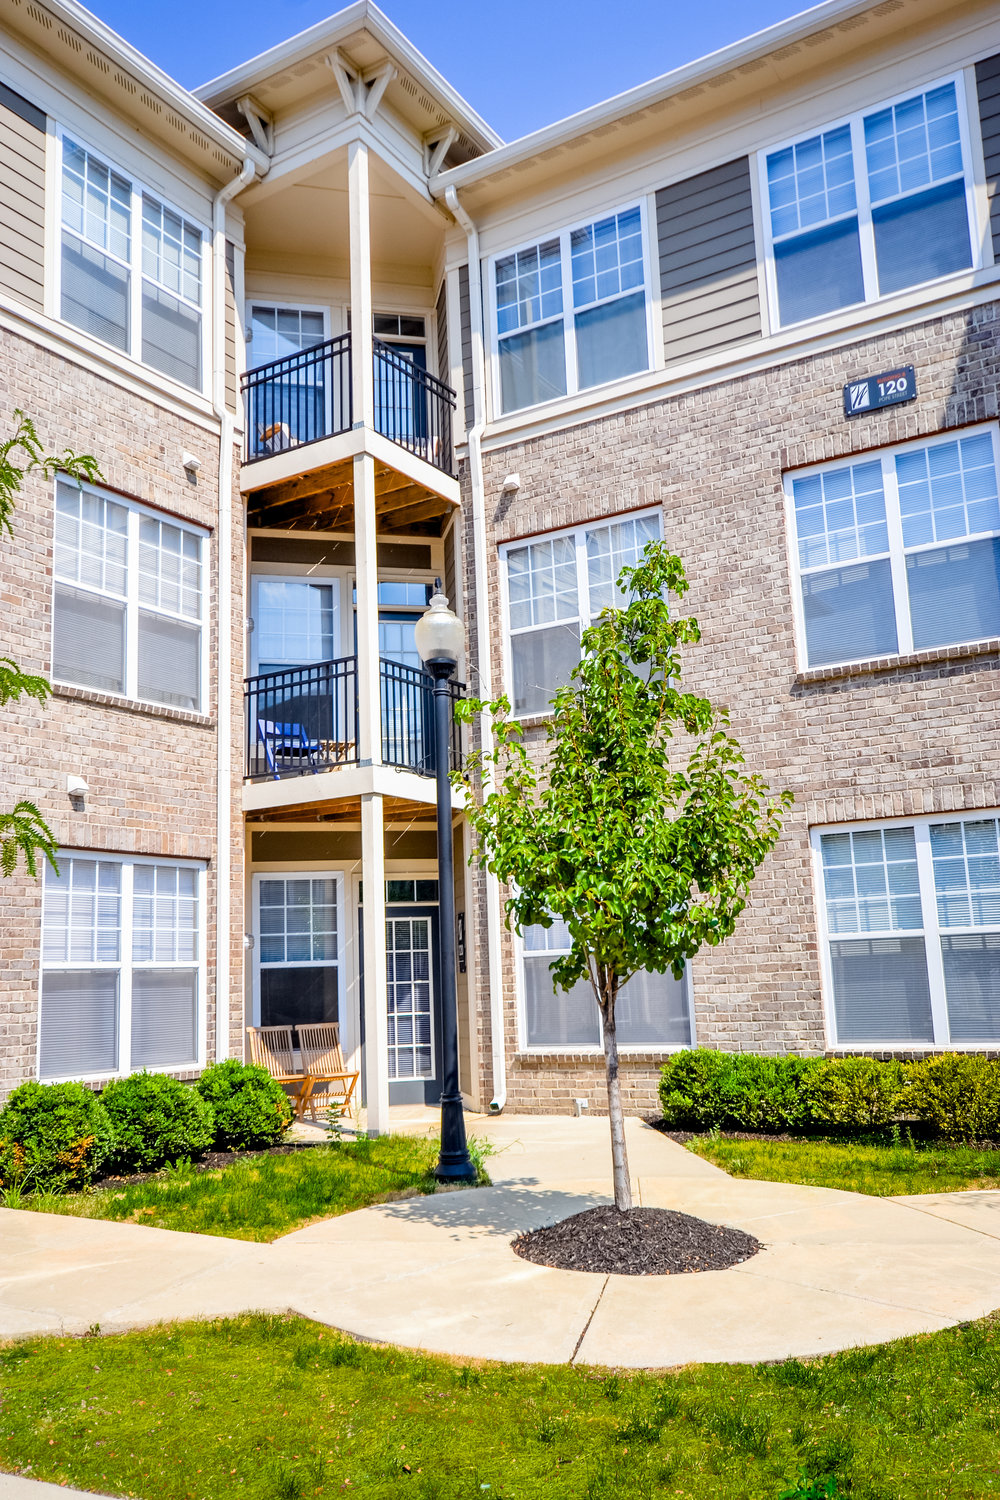 4 Downtown Indianapolis Apartments The Waverley triangle balcony.jpg